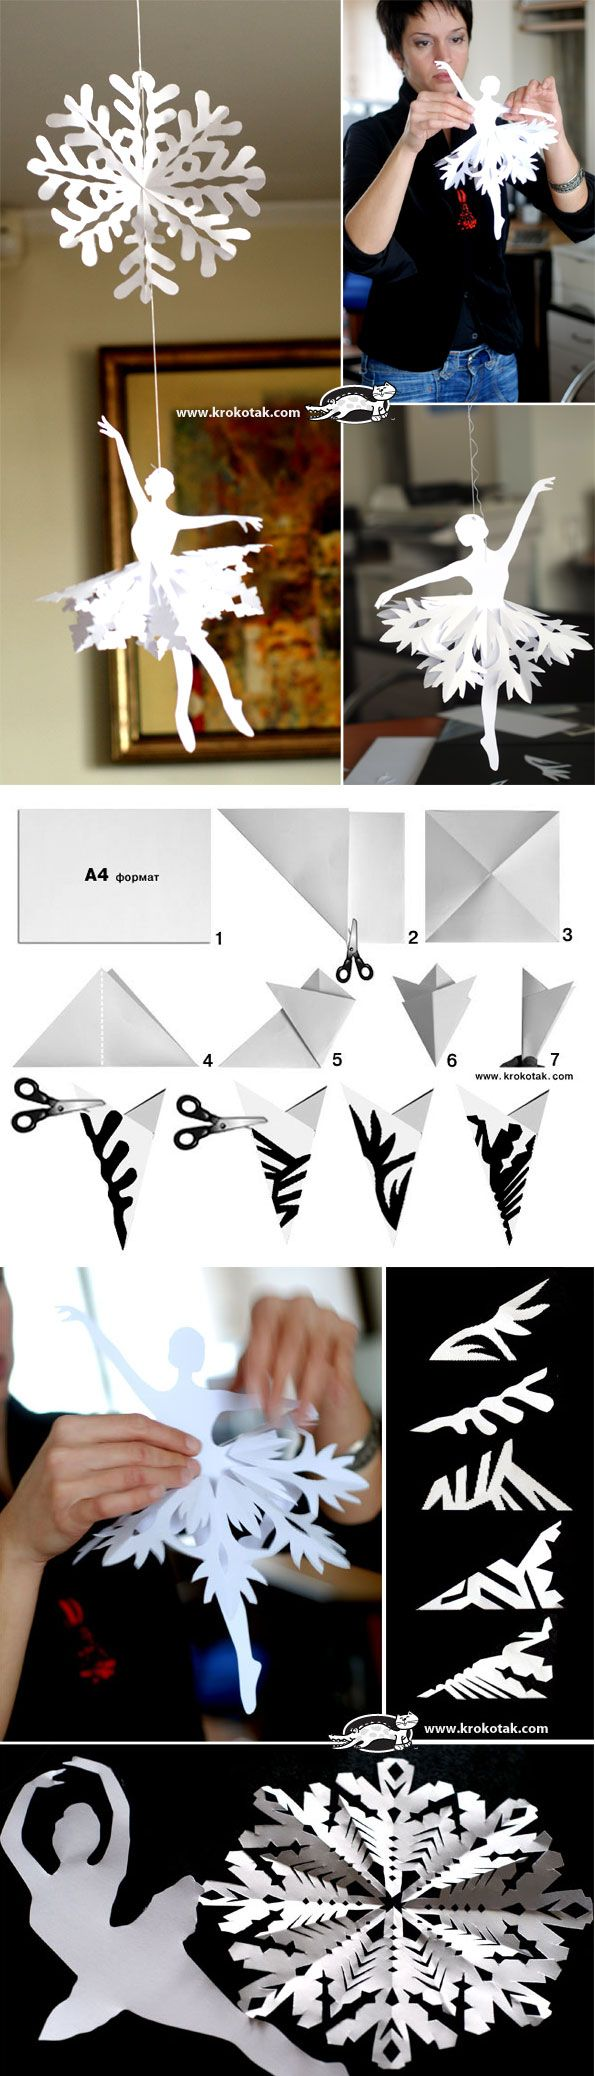 DIY Ballerina Snowflakes - page has templates for ballerinas and snowflakes. Phew!